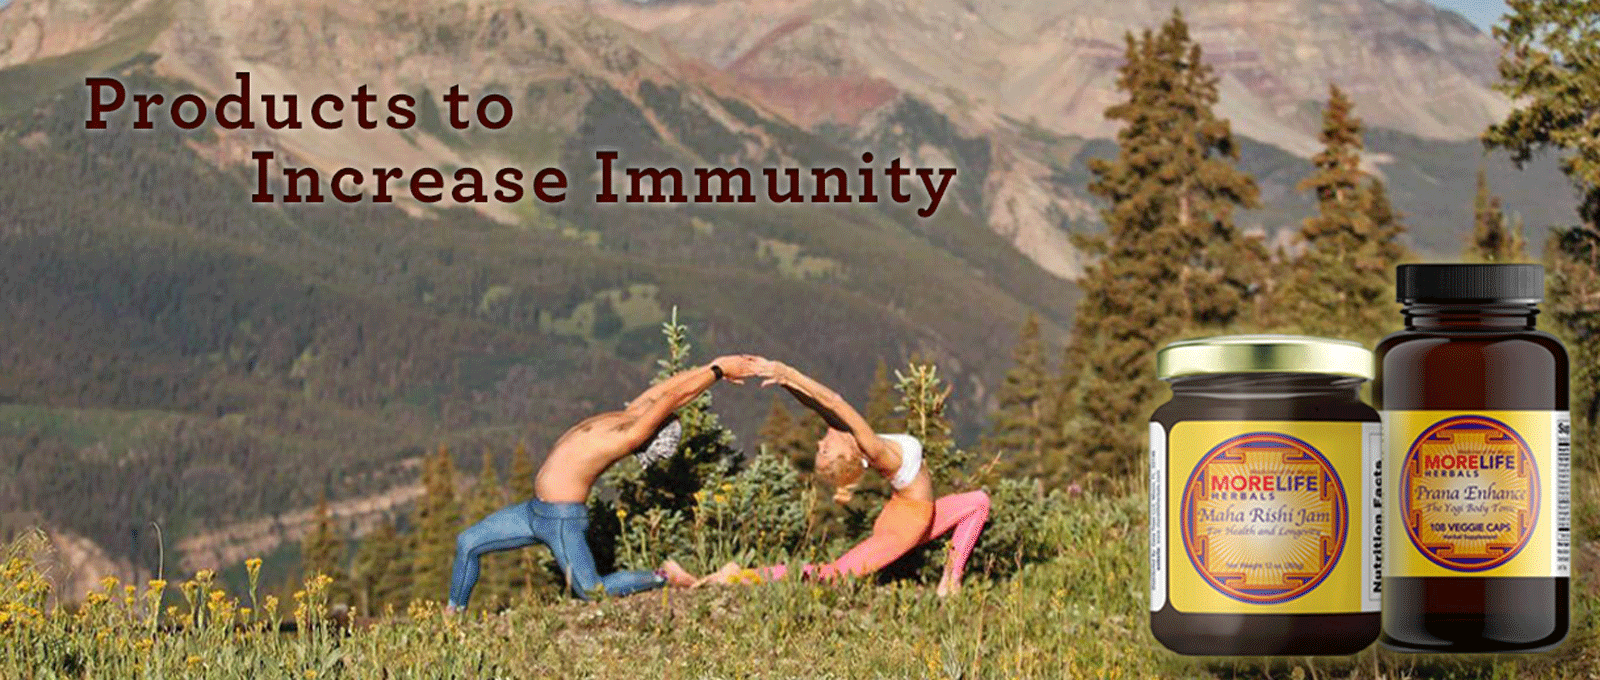 increase-immunity-banner